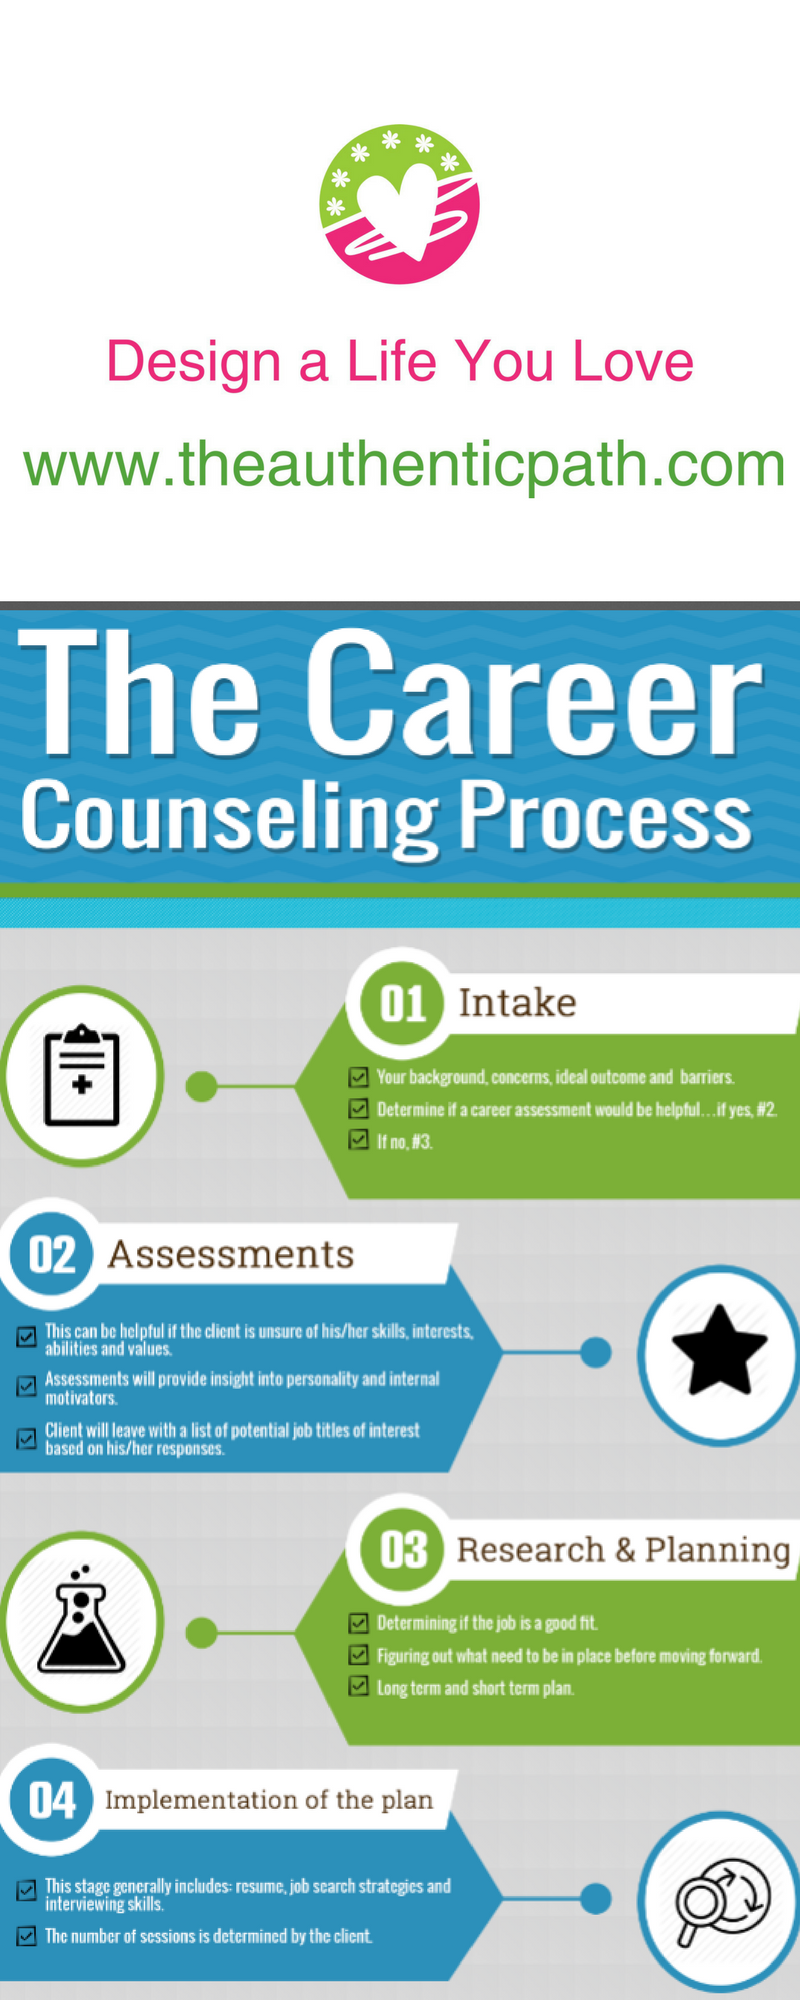 The Career Counseling Process by The Authentic Path.png